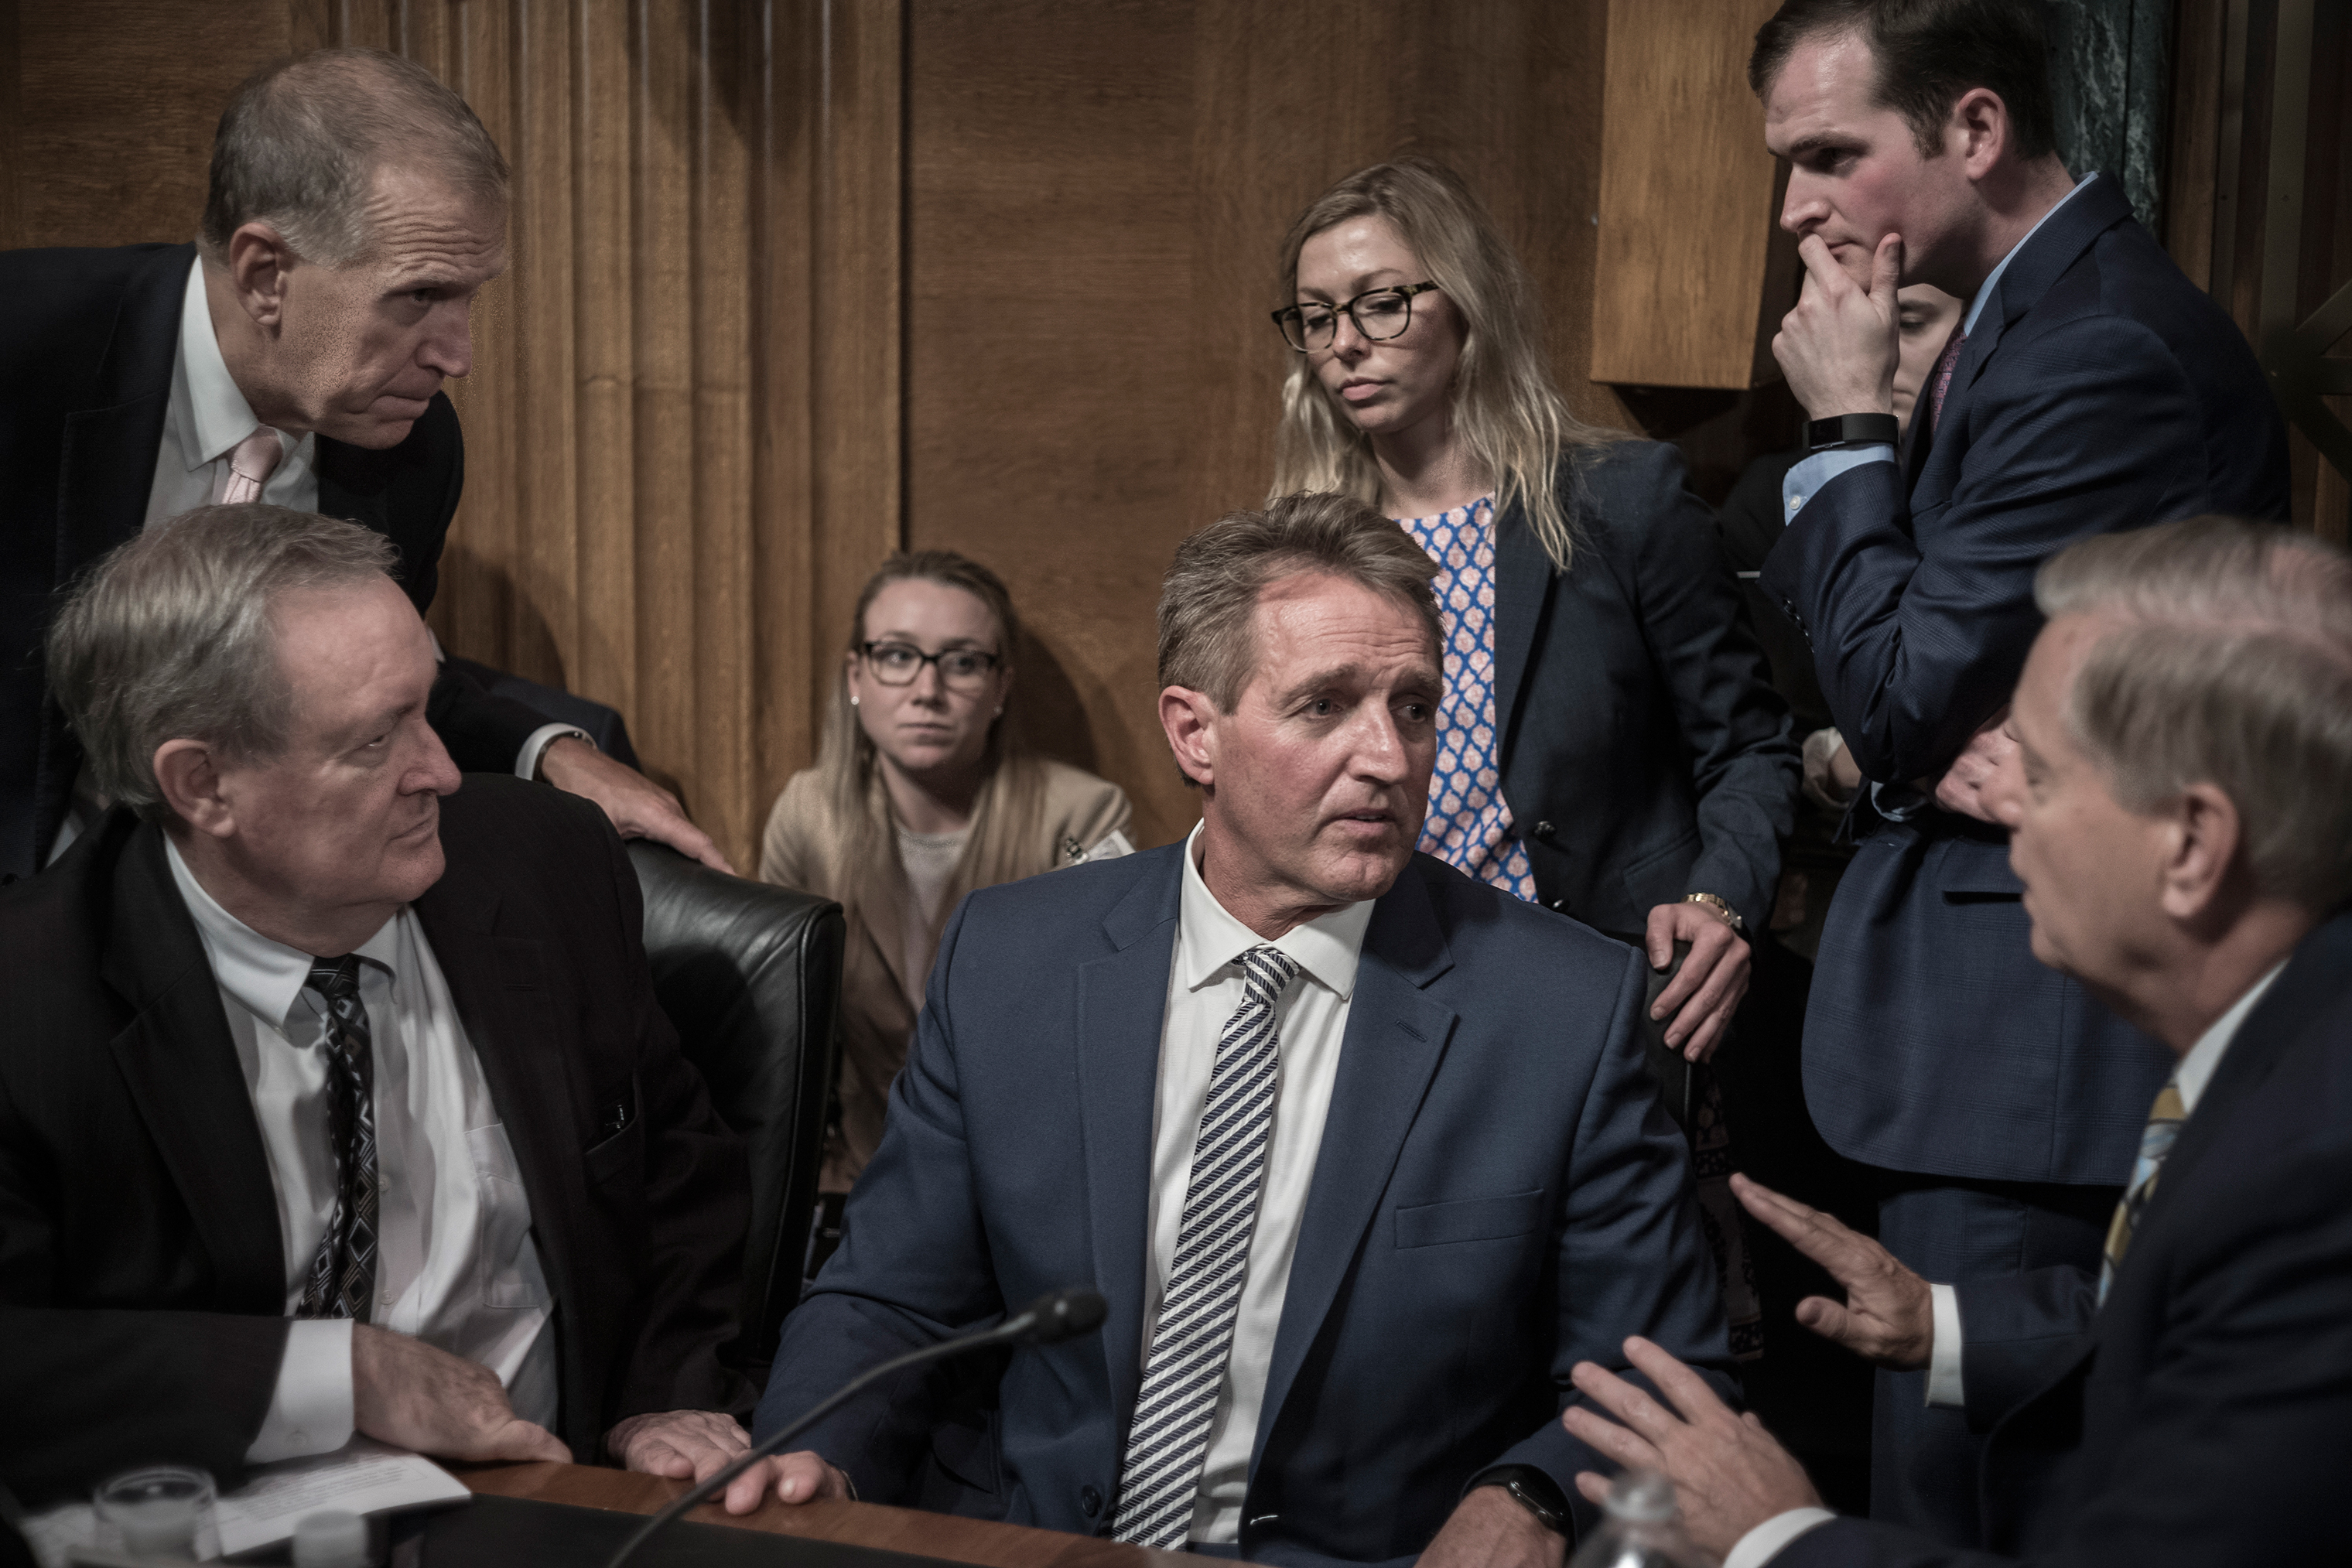 Just after the gavel came down and the hearing came to a close on Sept. 28, Sen. Jeff Flake is surrounded by fellow Sens. Thom Tillis (R-NC) above left, Mike Crapo (R-ID) and Lindsey Graham (R-SC), lower right. Flake had just appealed for a delay on Brett Kavanaugh's confirmation vote.